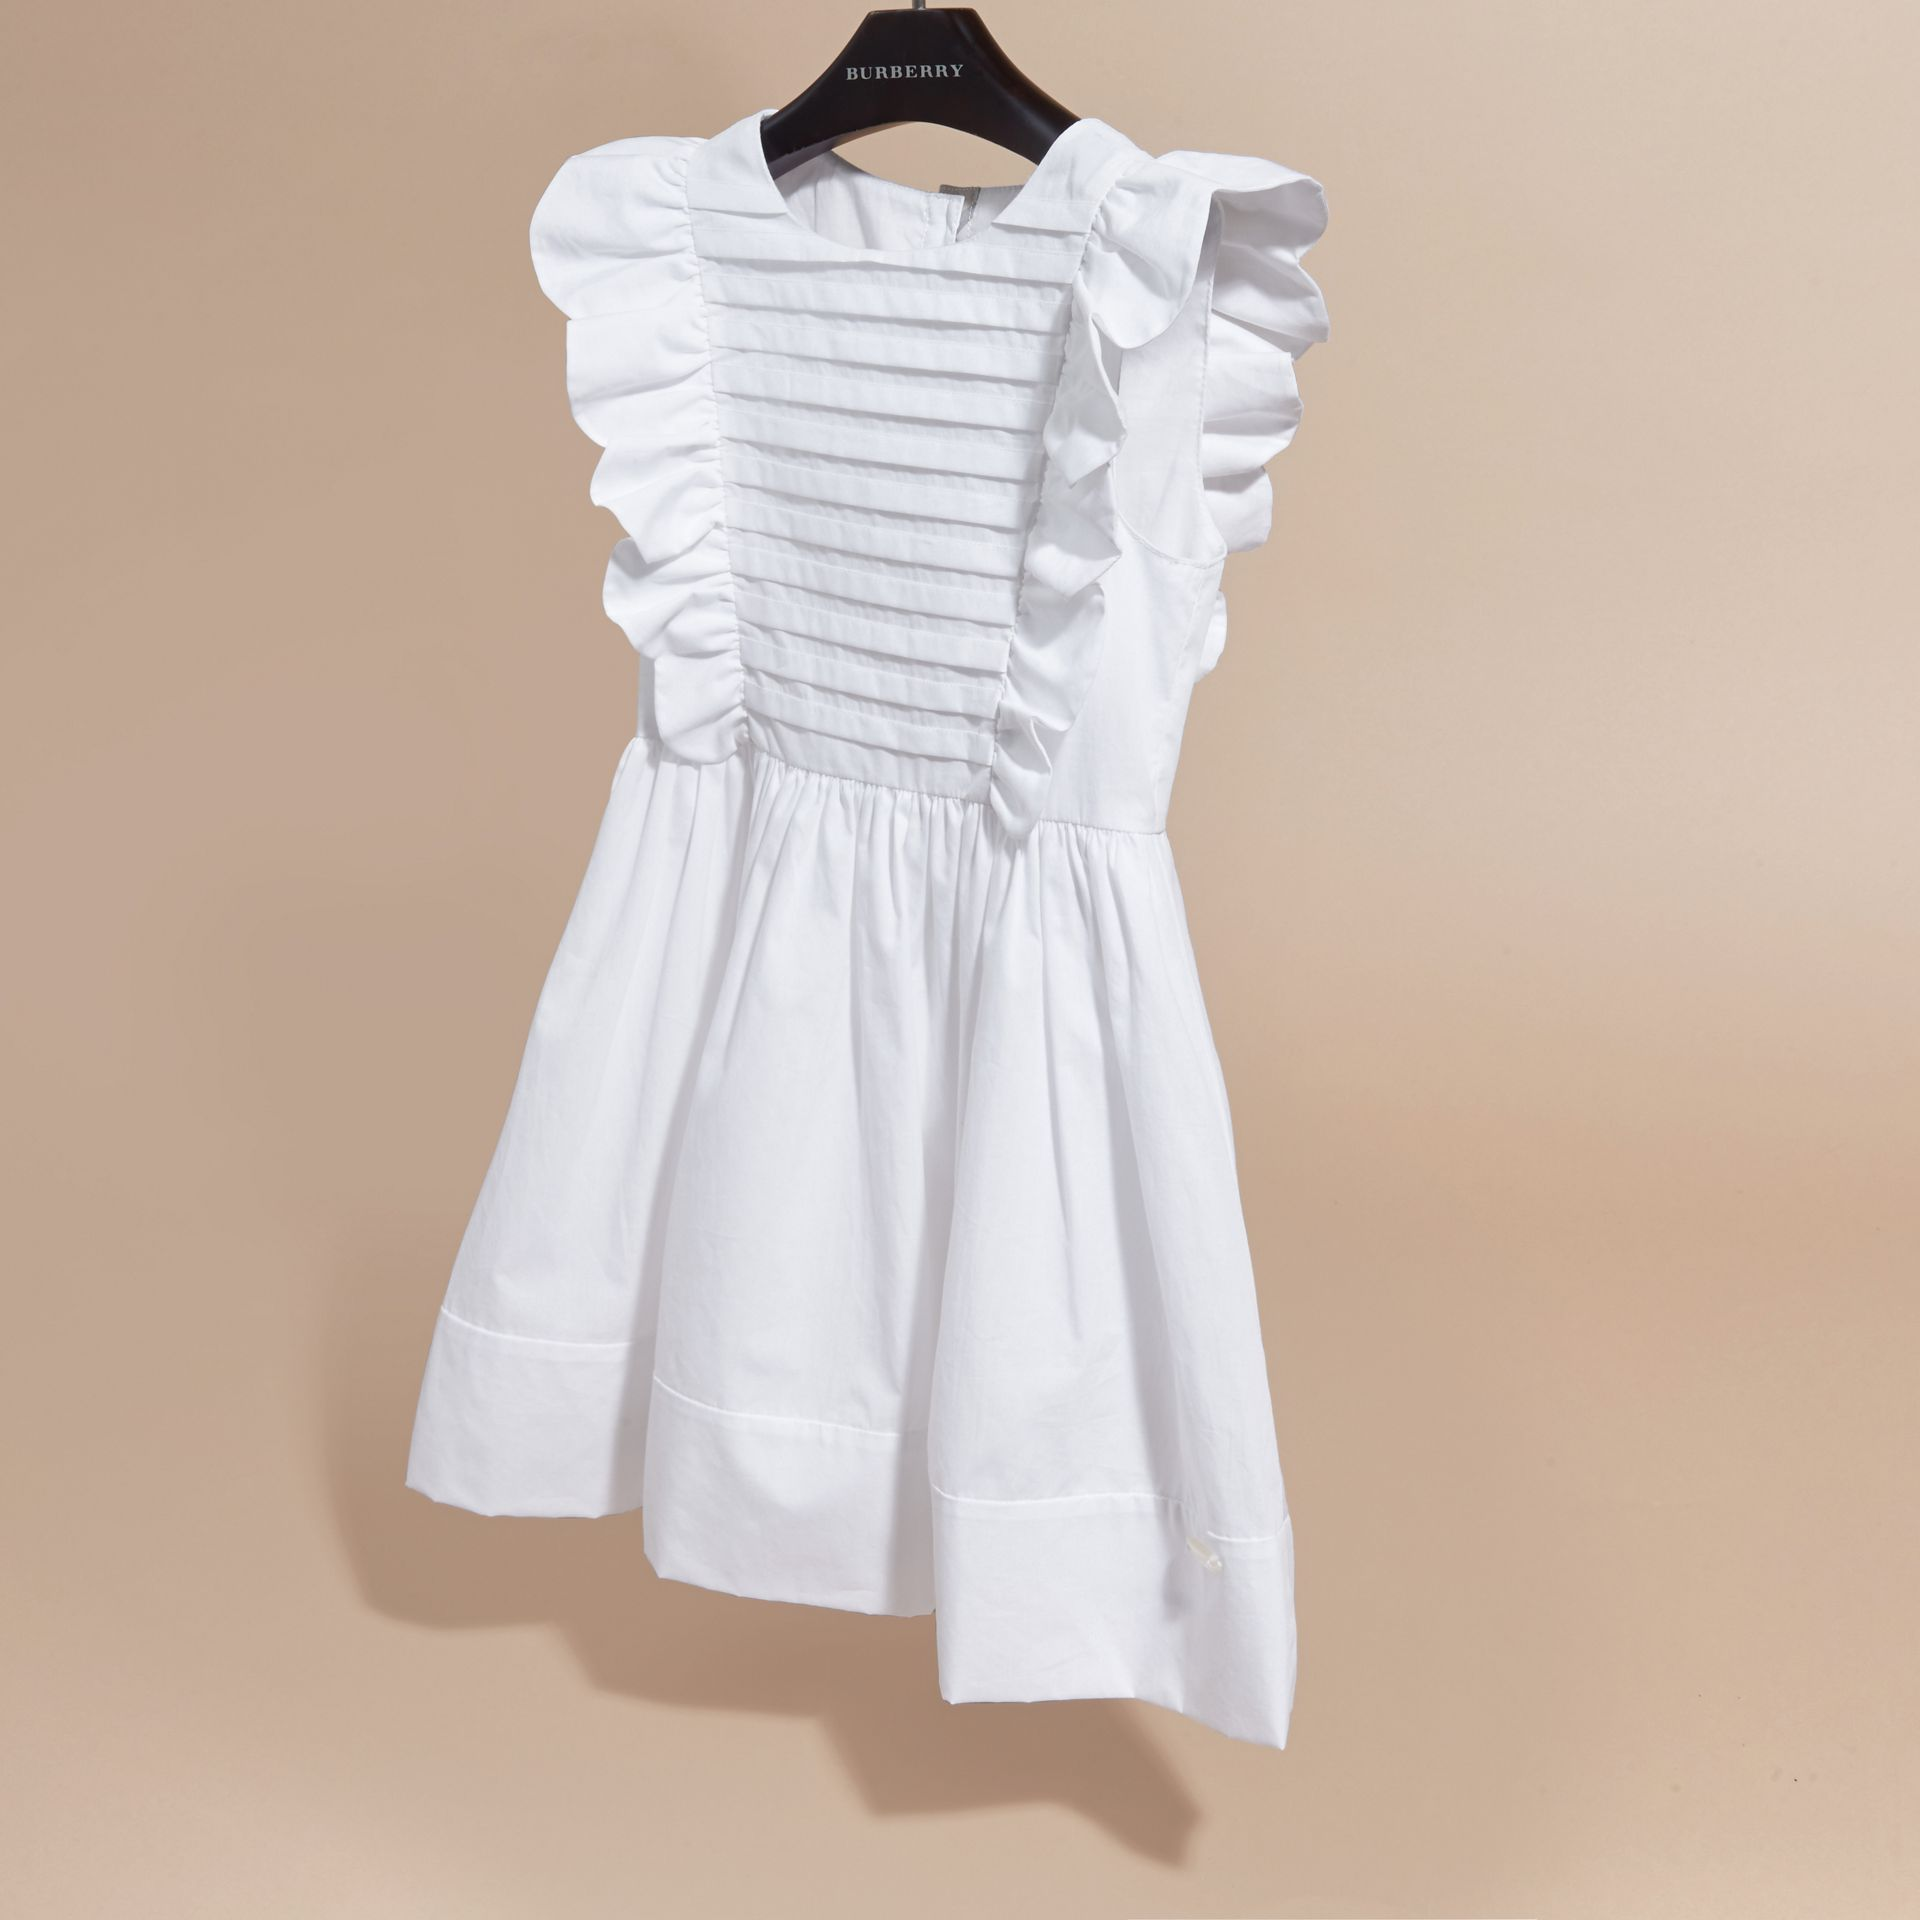 Ruffle and Pleat Detail Cotton Dress in White | Burberry Hong Kong - gallery image 3